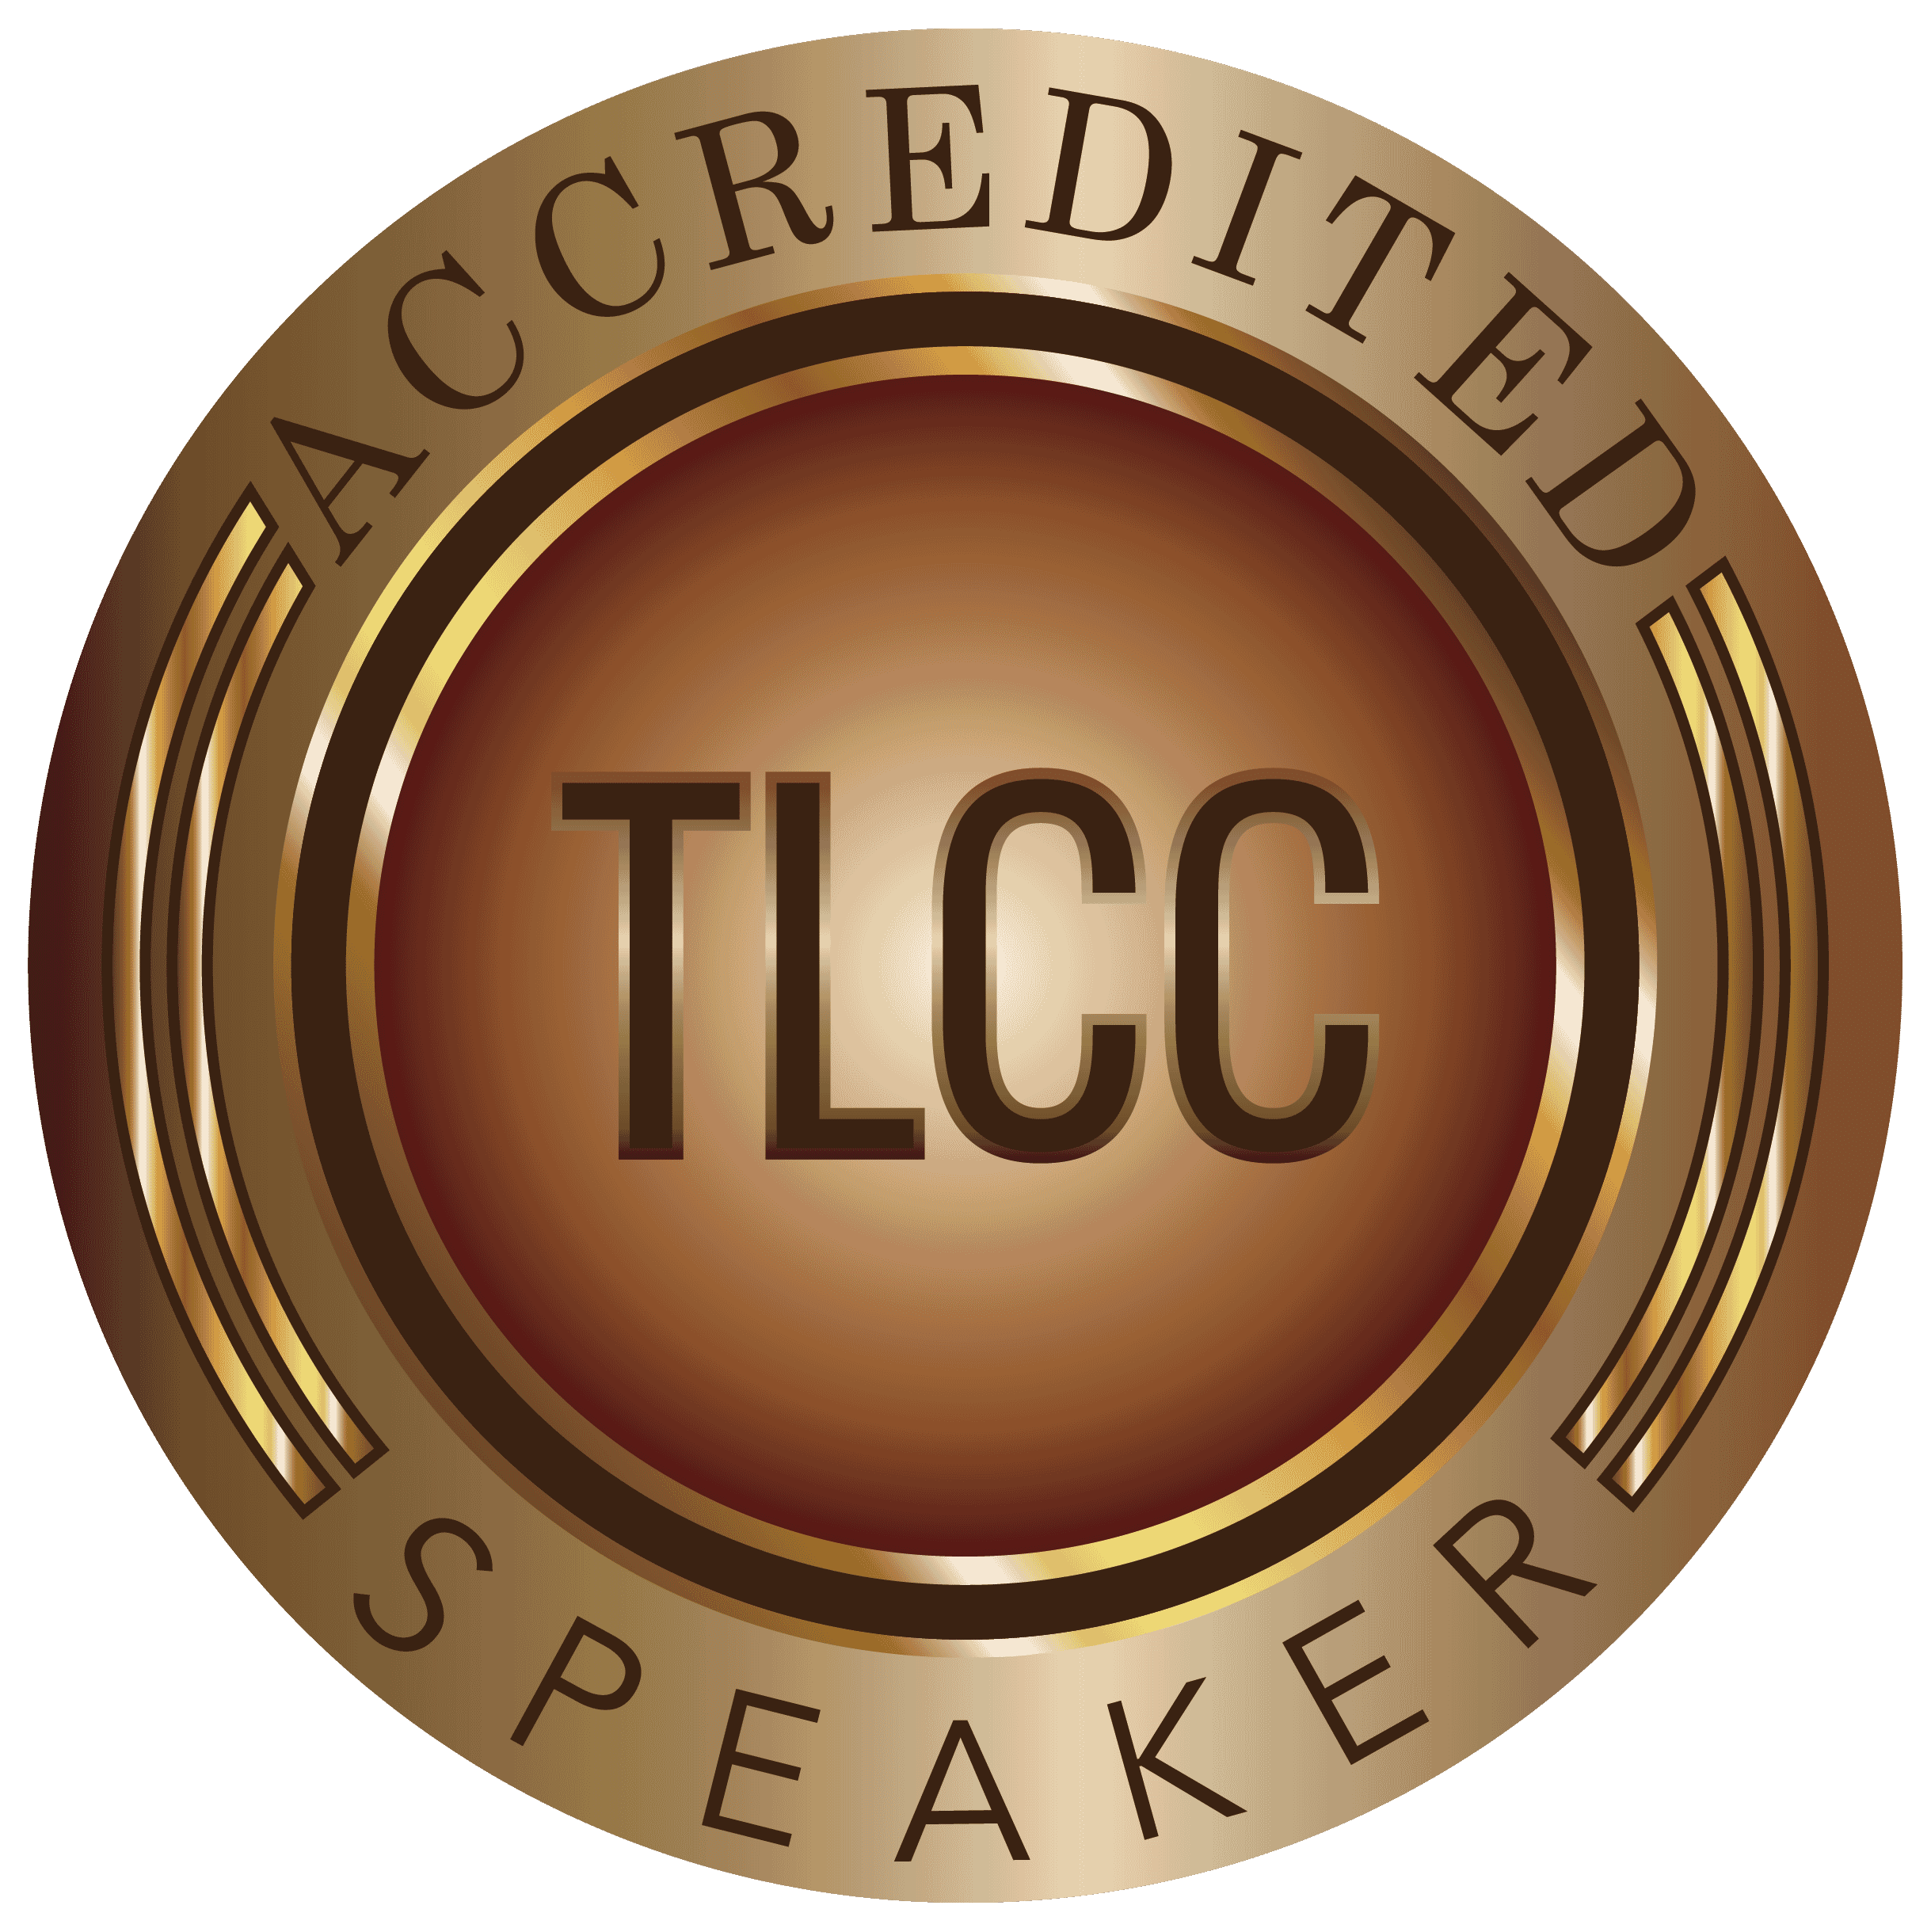 Accredited%20Speaker%20(1).png